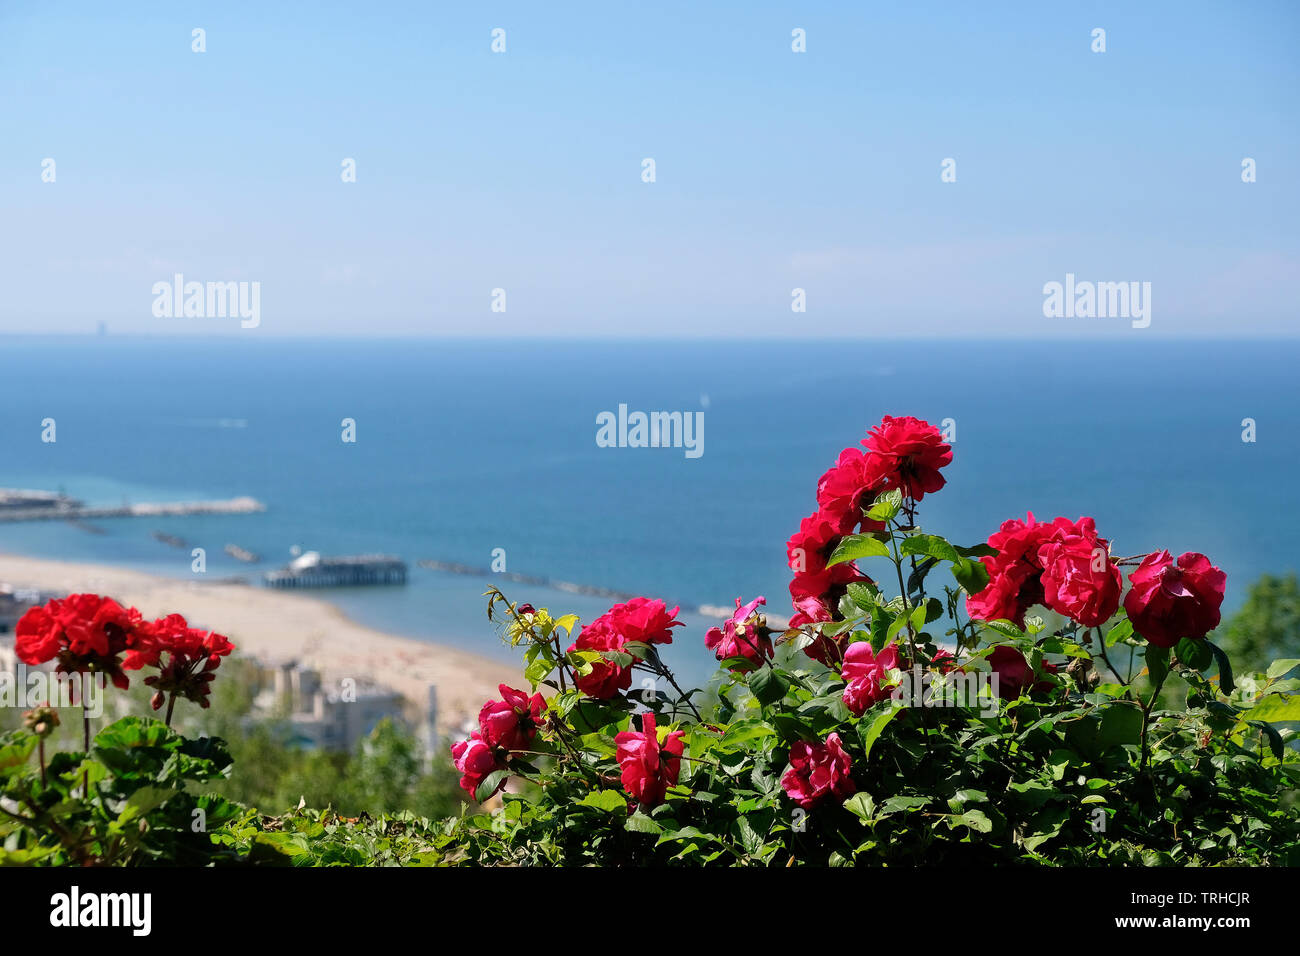 View to the Adriatic coast with Gabbice Mare from the Parco Naturale Monte San Bartolo in the province Marche, Italy. - Stock Image